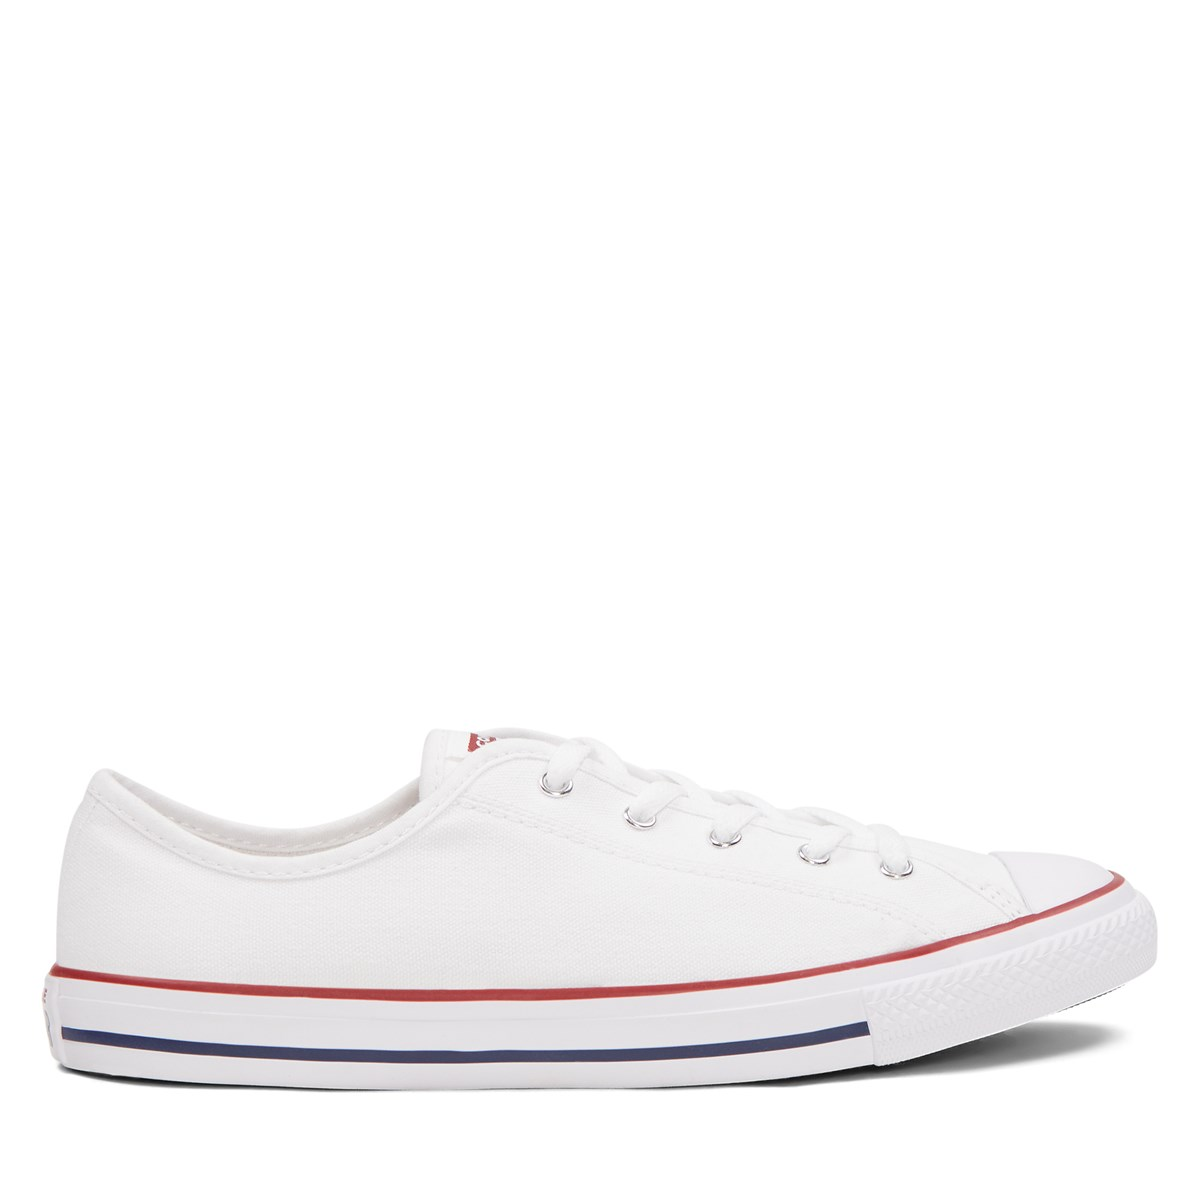 Women's Chuck Taylor All Star Dainty Sneakers in White